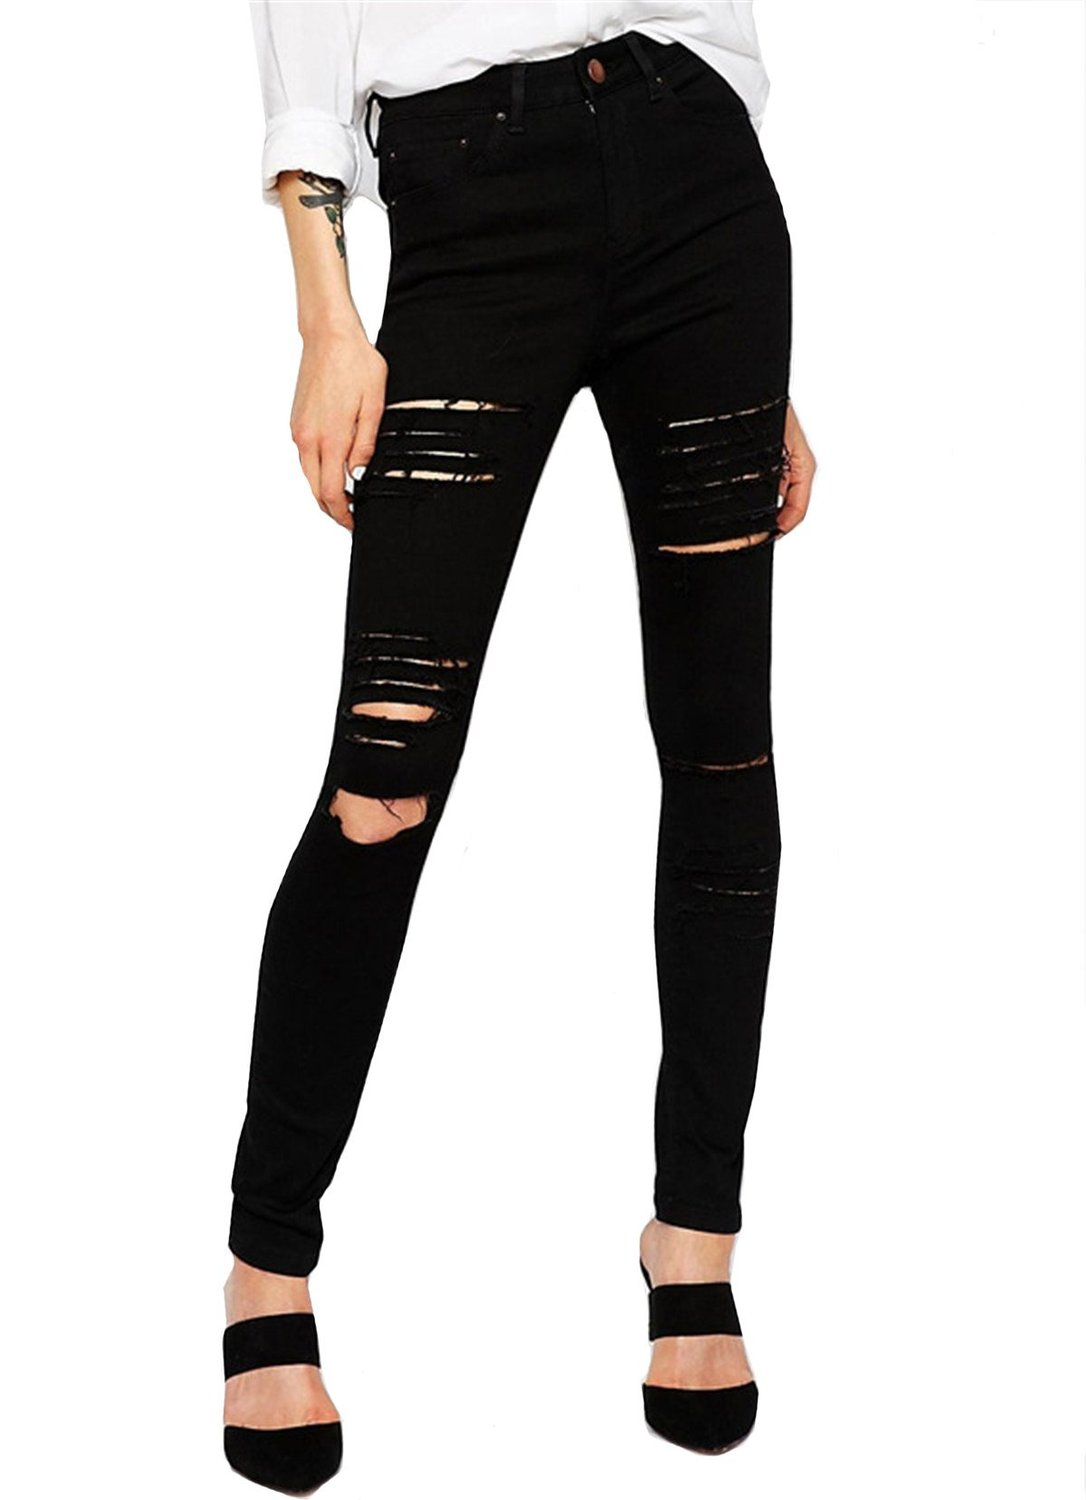 bc8eb4cef3 Shein Women's Slim Cut Out Black Pants at Amazon Women's Clothing store: